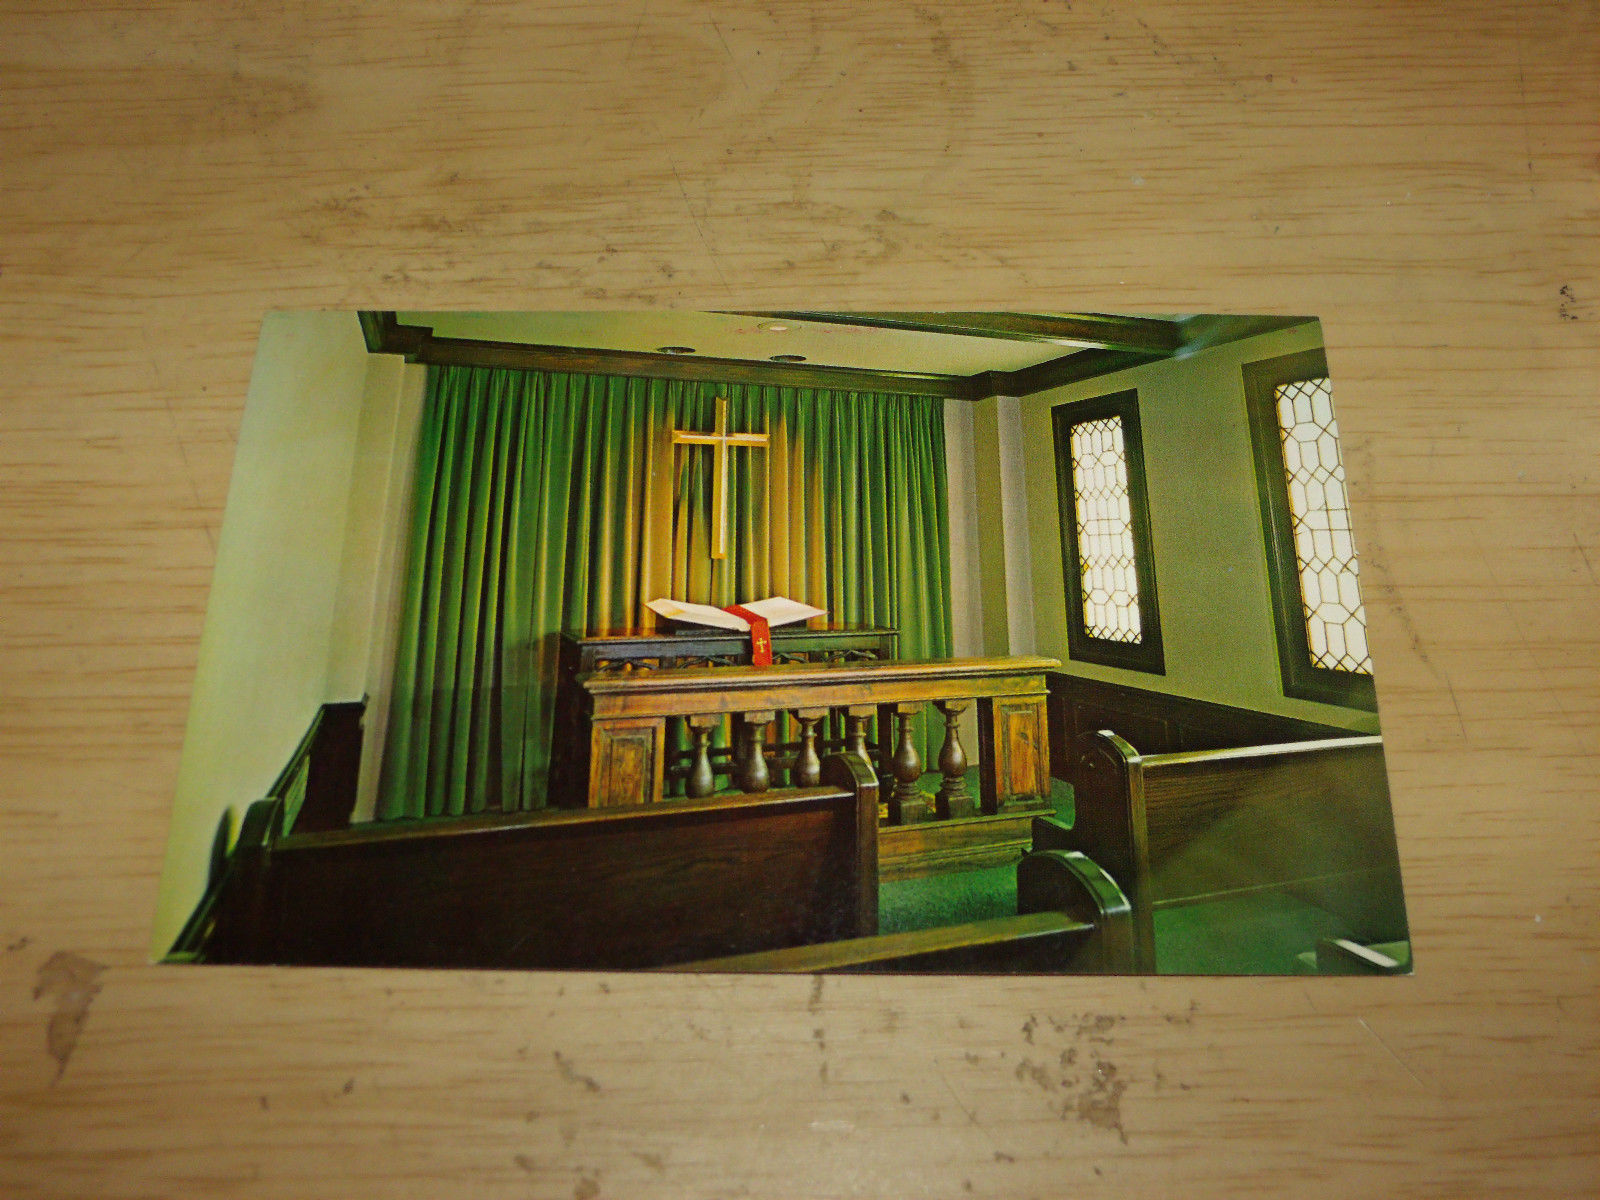 MEDITATION CHAPEL BAKER UNIVERSITY LIBRARY VINTAGE UNUSED POSTCARD